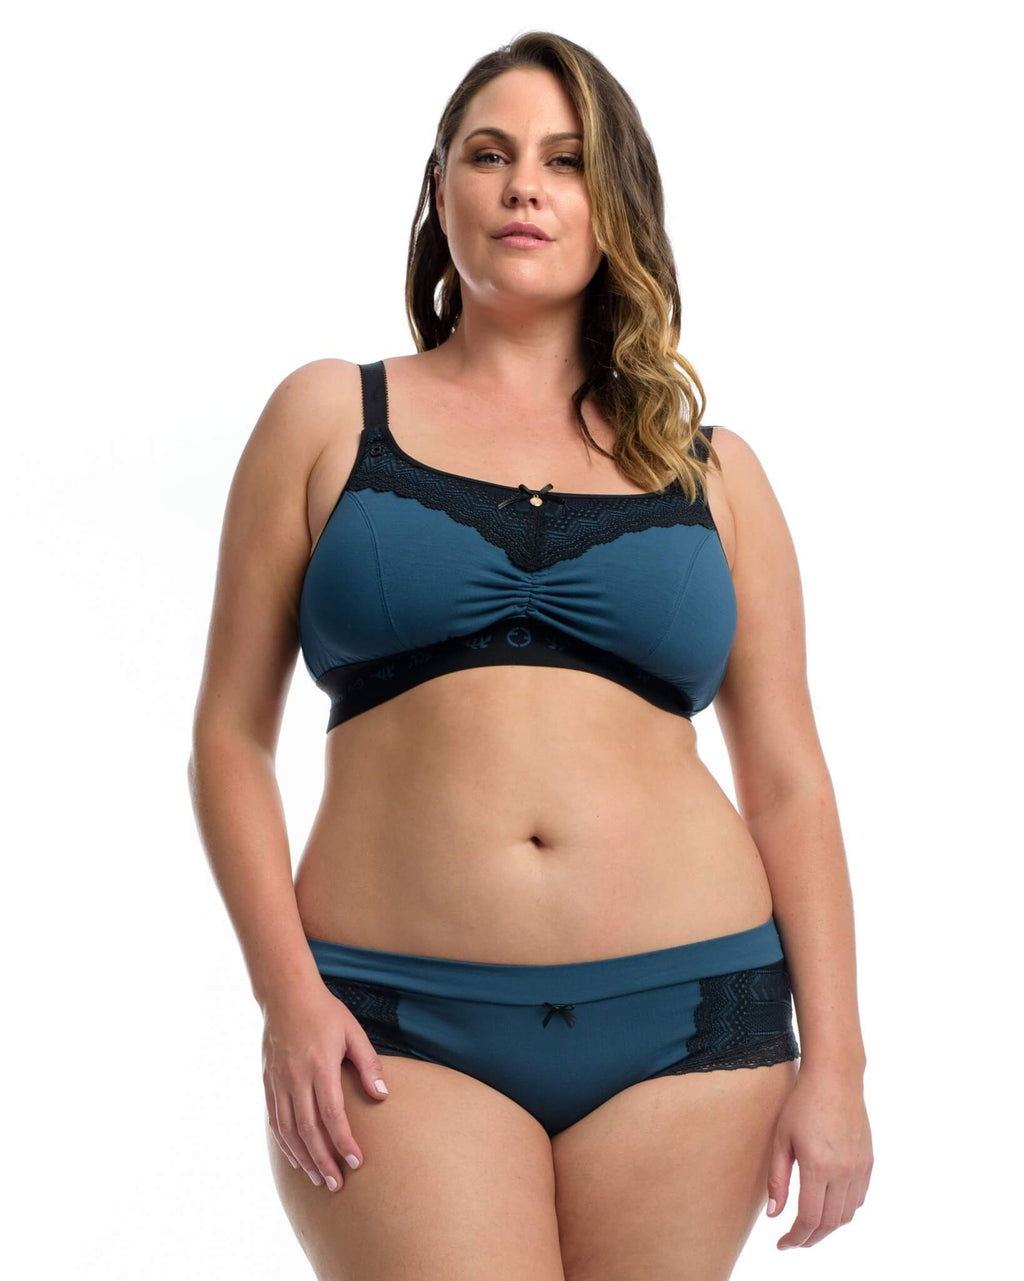 THE LOUNGE BRA: Midnight Blue - Full Embrace